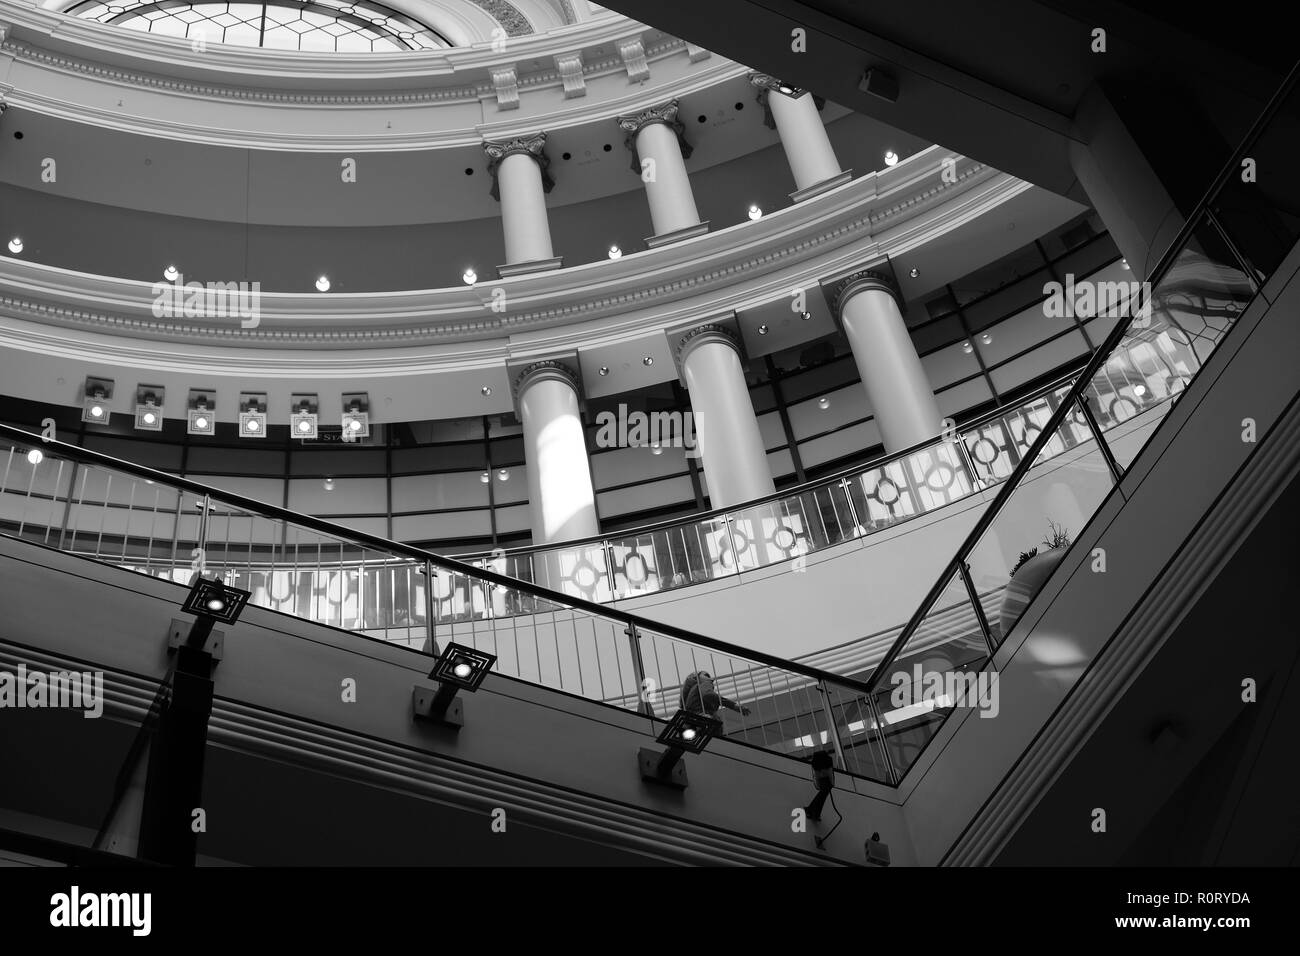 Black and white architectural detail of upper floors at the Westfield San Francisco Centre, San Francisco, California, USA. - Stock Image